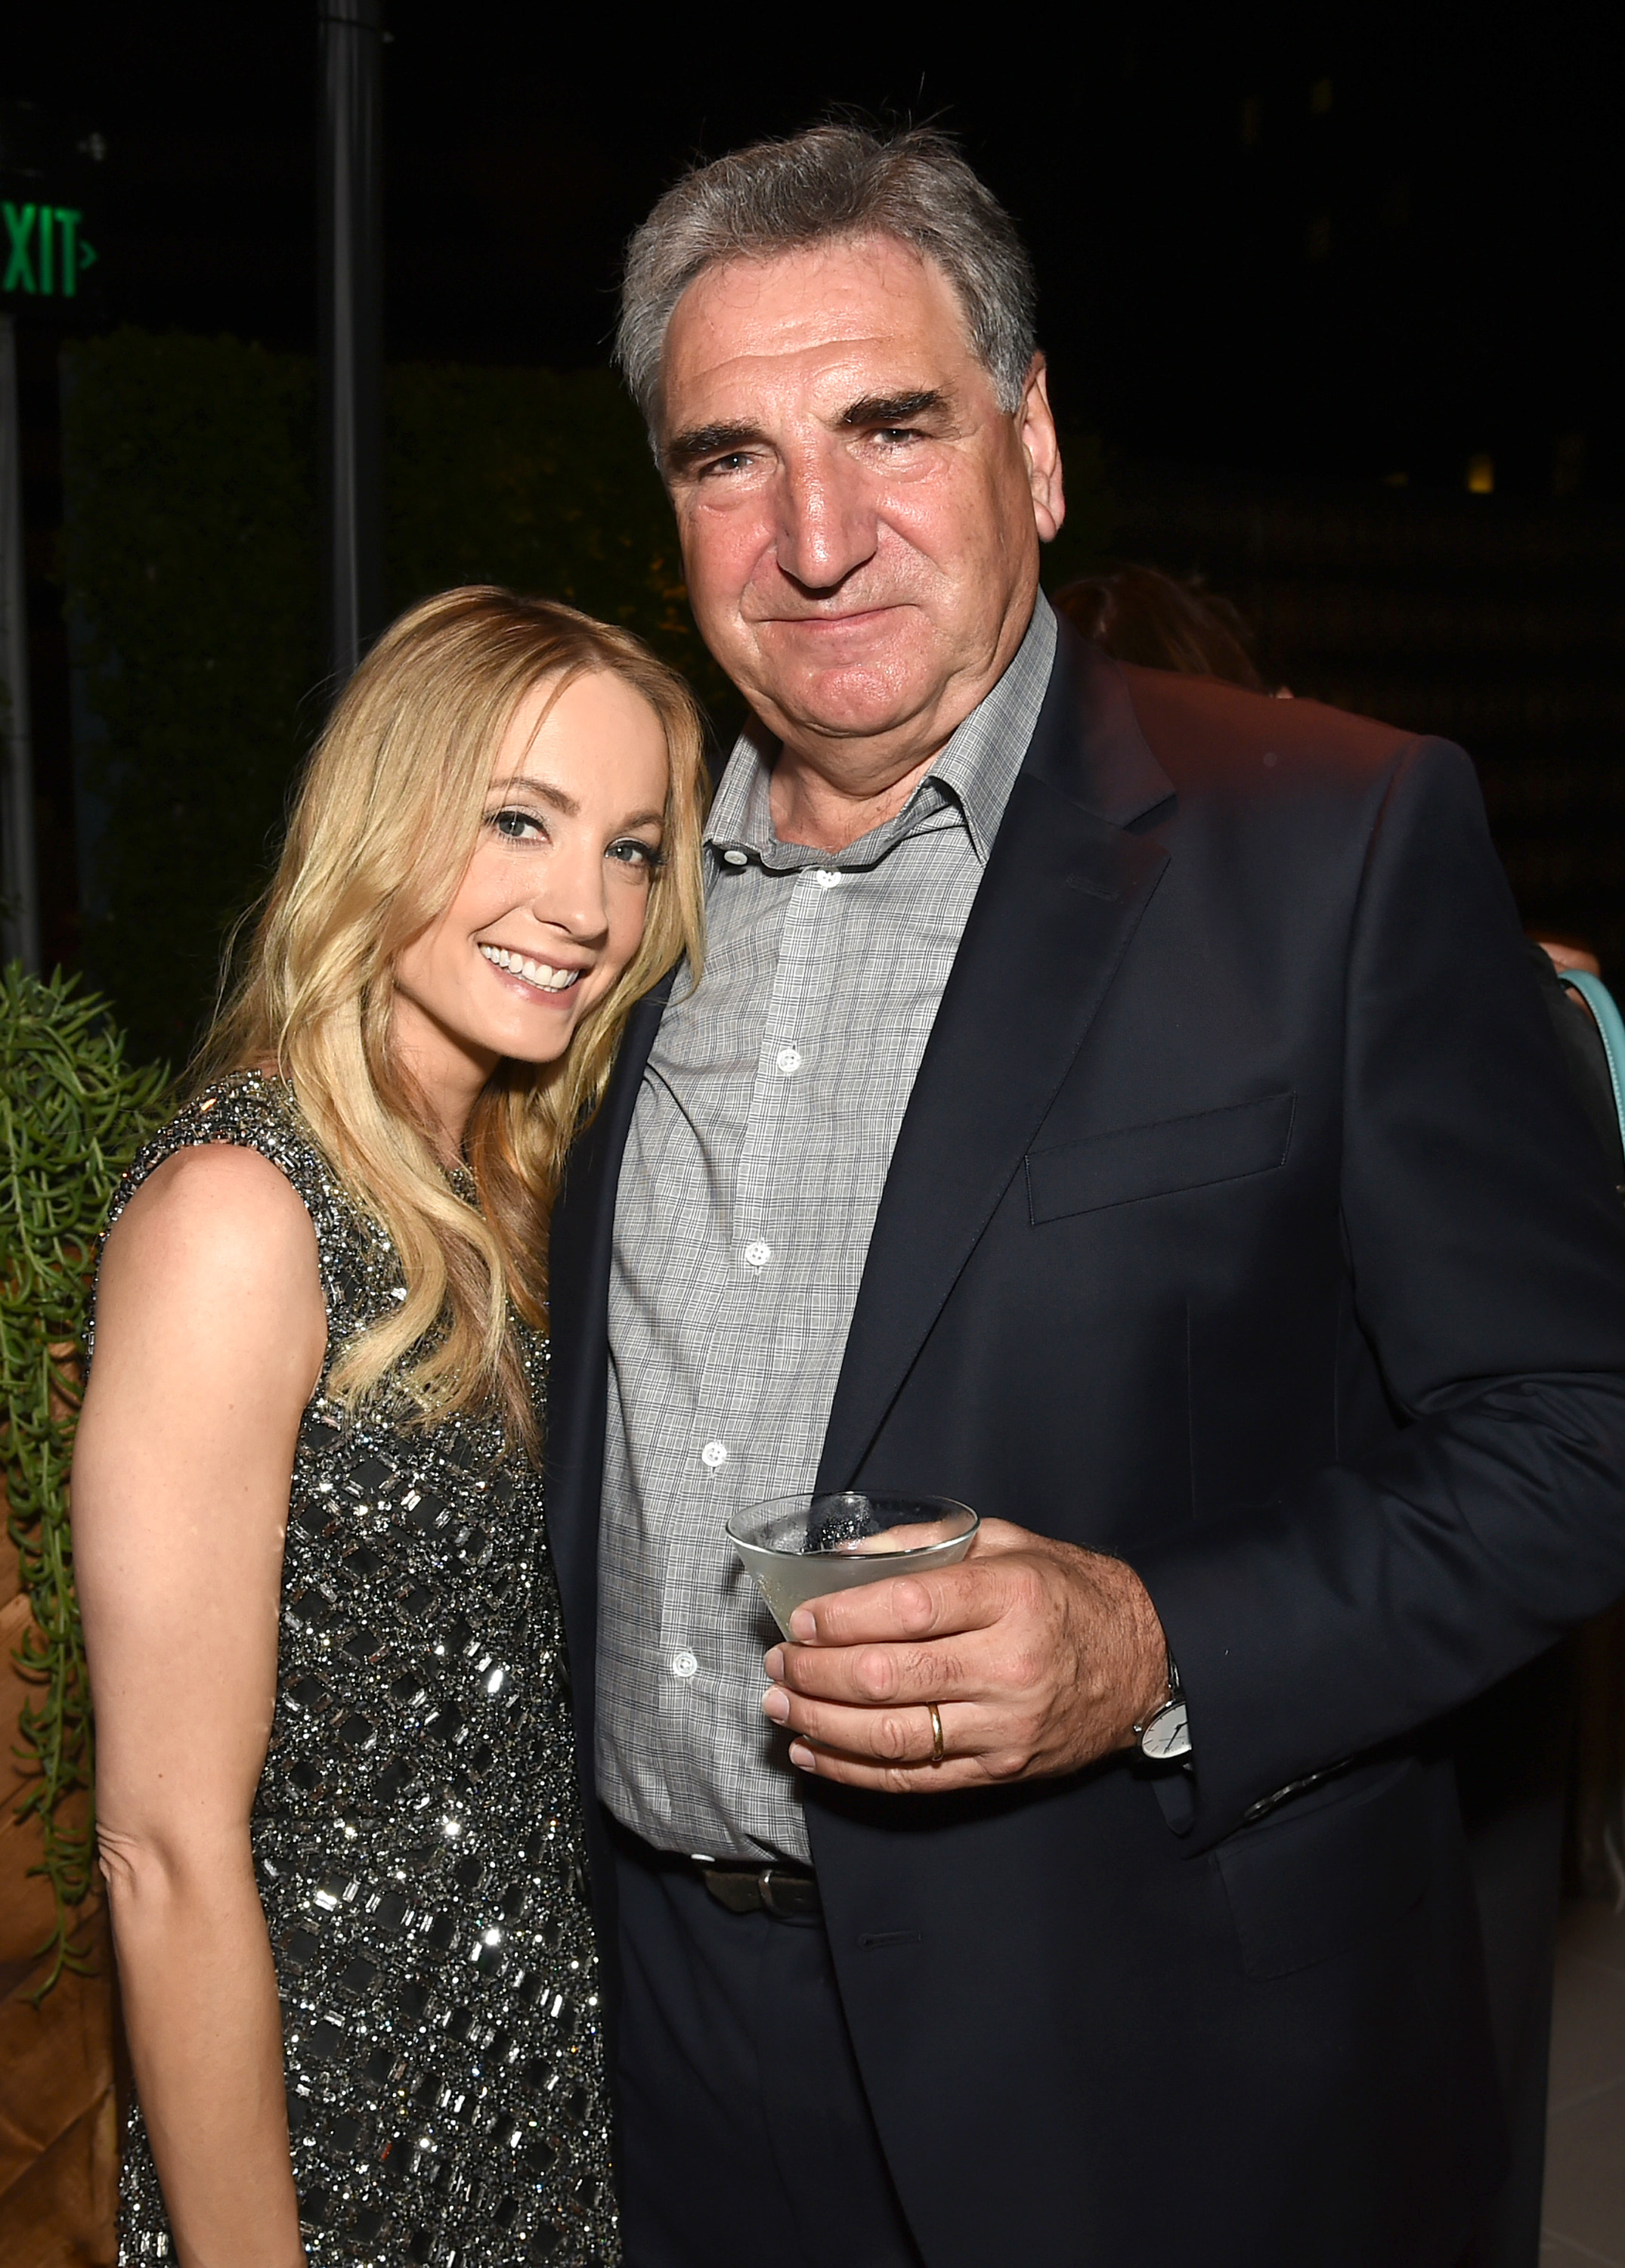 EXCLUSIVE - Joanne Froggatt left, and Jim Carter attend the Television Academy's 67th Emmy Awards Performers Nominee Reception at the Pacific Design Center on Saturday, Sept.19, 2015, in West Hollywood, Calif. (Photo by Charles Sykes/Invision for the Television Academy/AP Images)